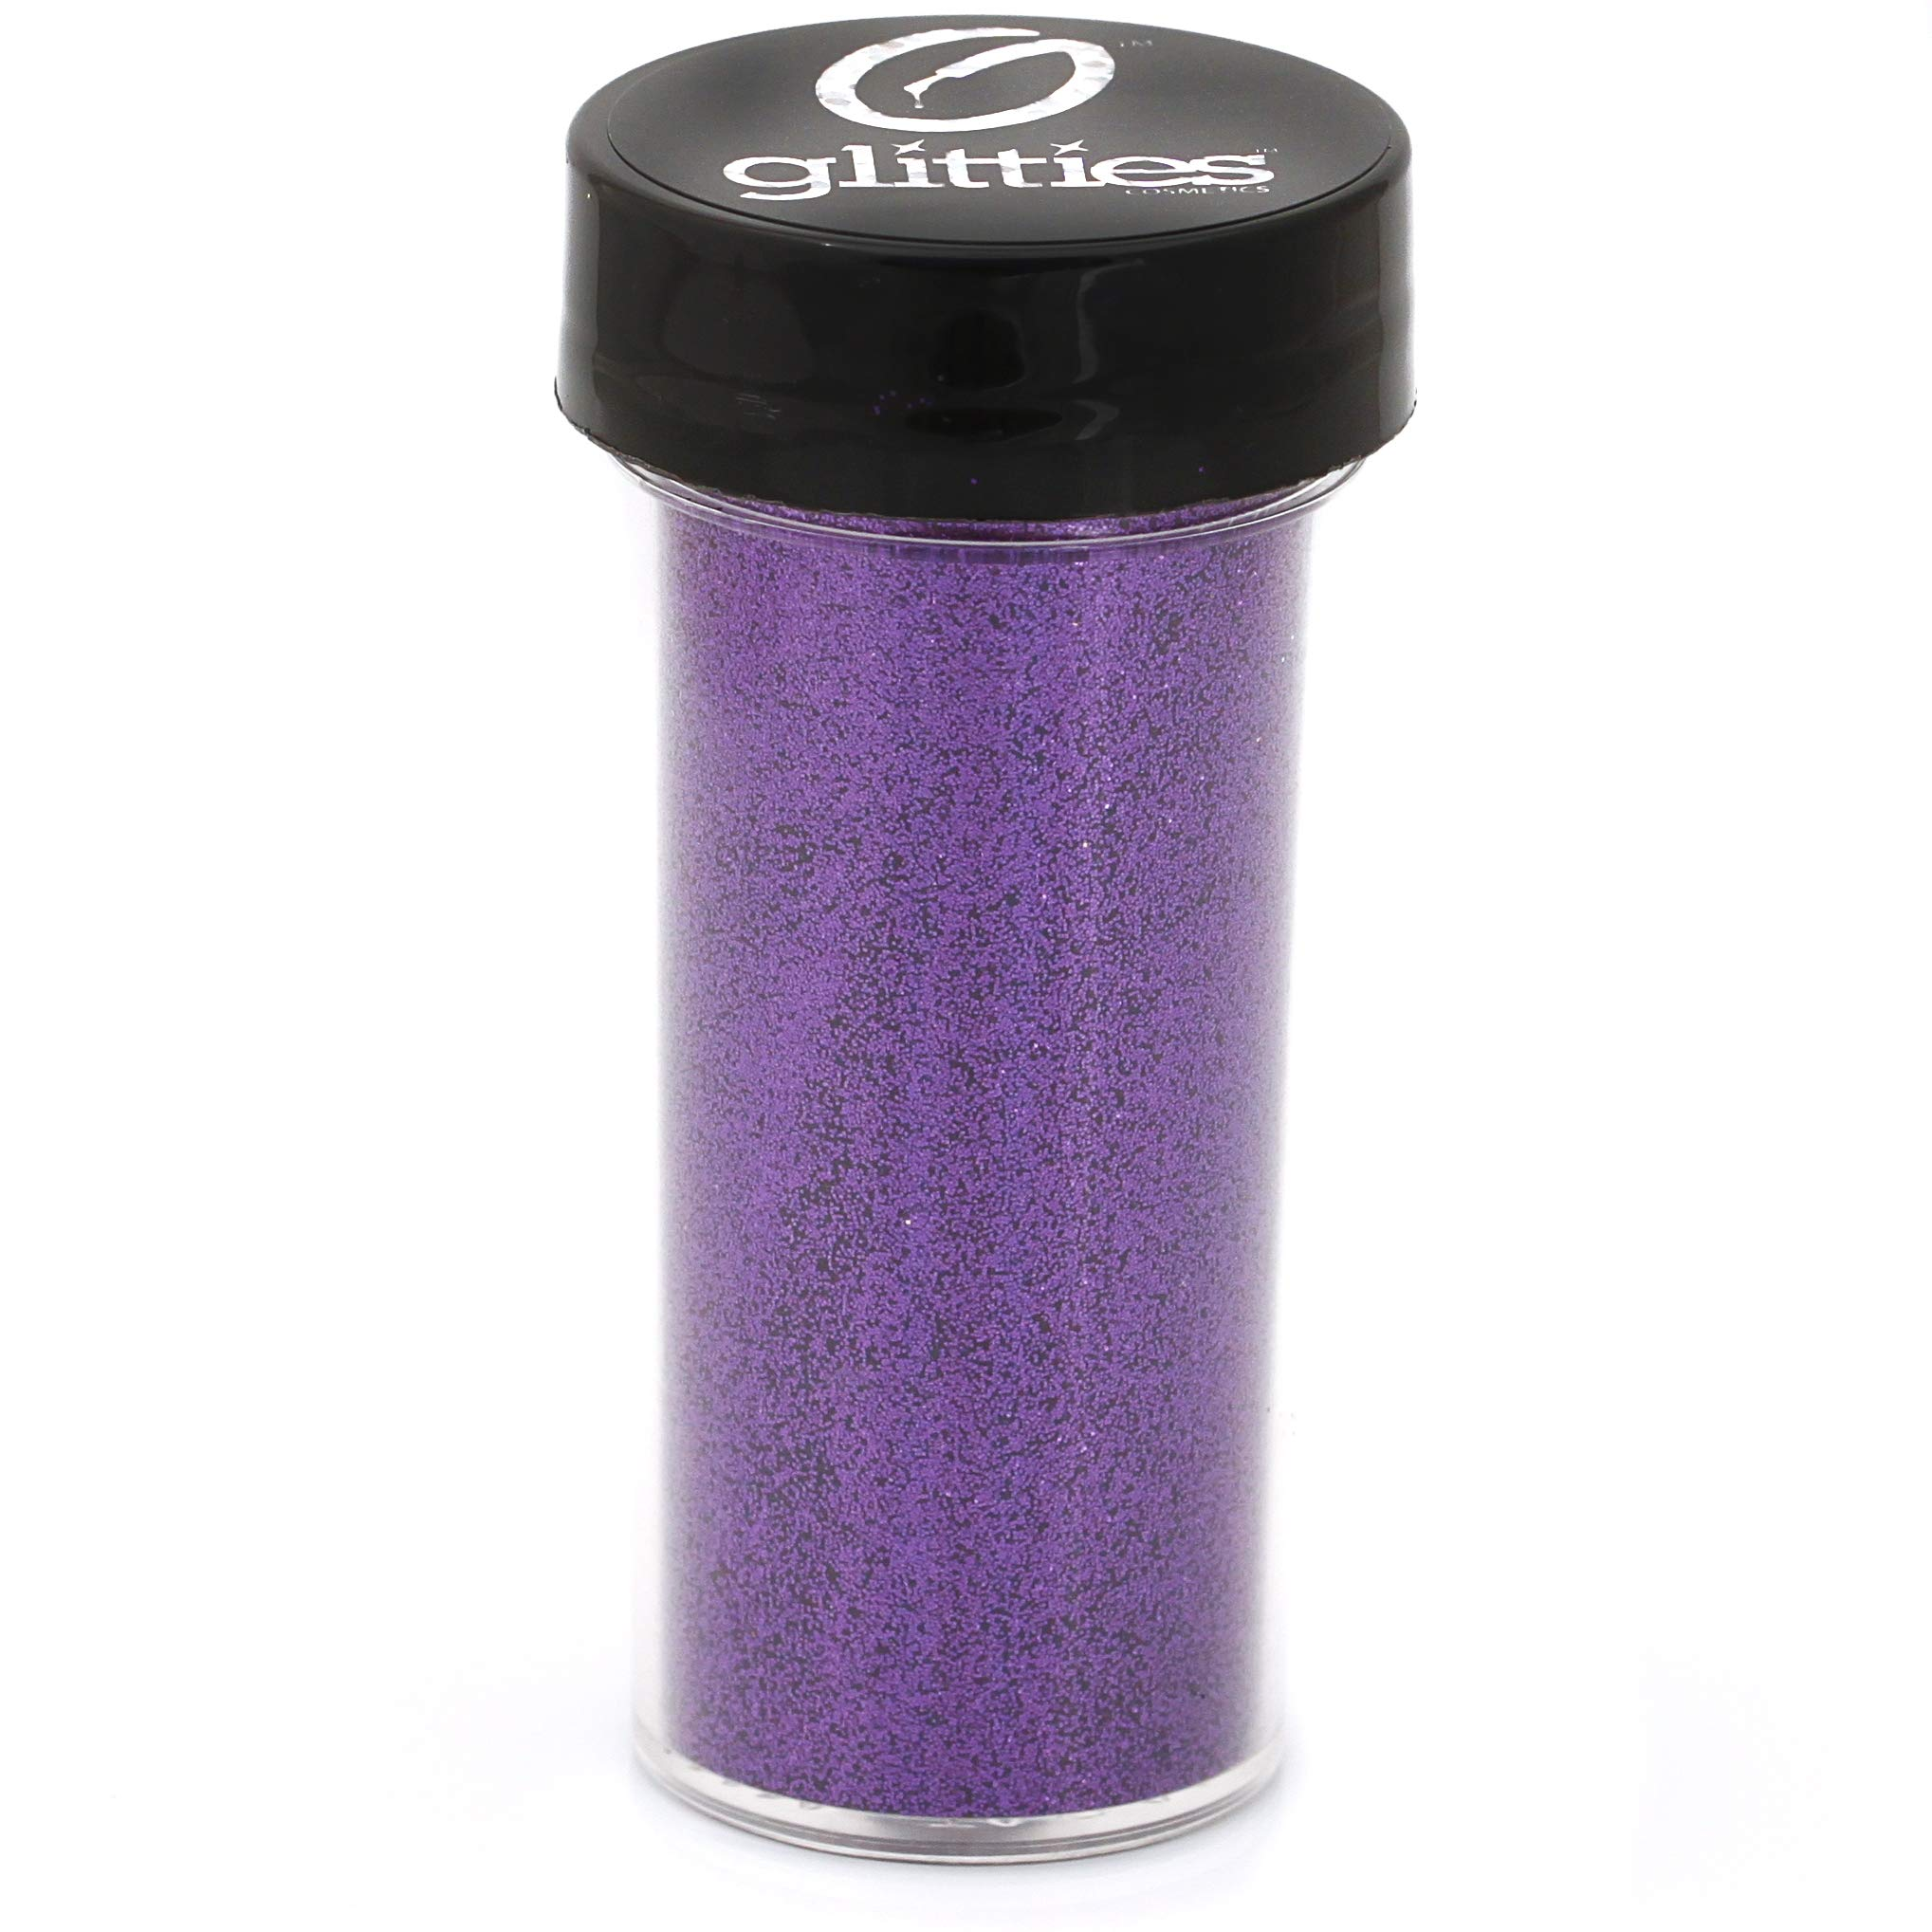 GLITTIES - Purple Essence - Cosmetic Grade Extra Fine (.006'') Loose Glitter Powder Safe for Skin! Perfect for Makeup, Body Tattoos, Face, Hair, Lips, Soap, Lotion, Nail Art - (30 Gram Jars) by Glitties